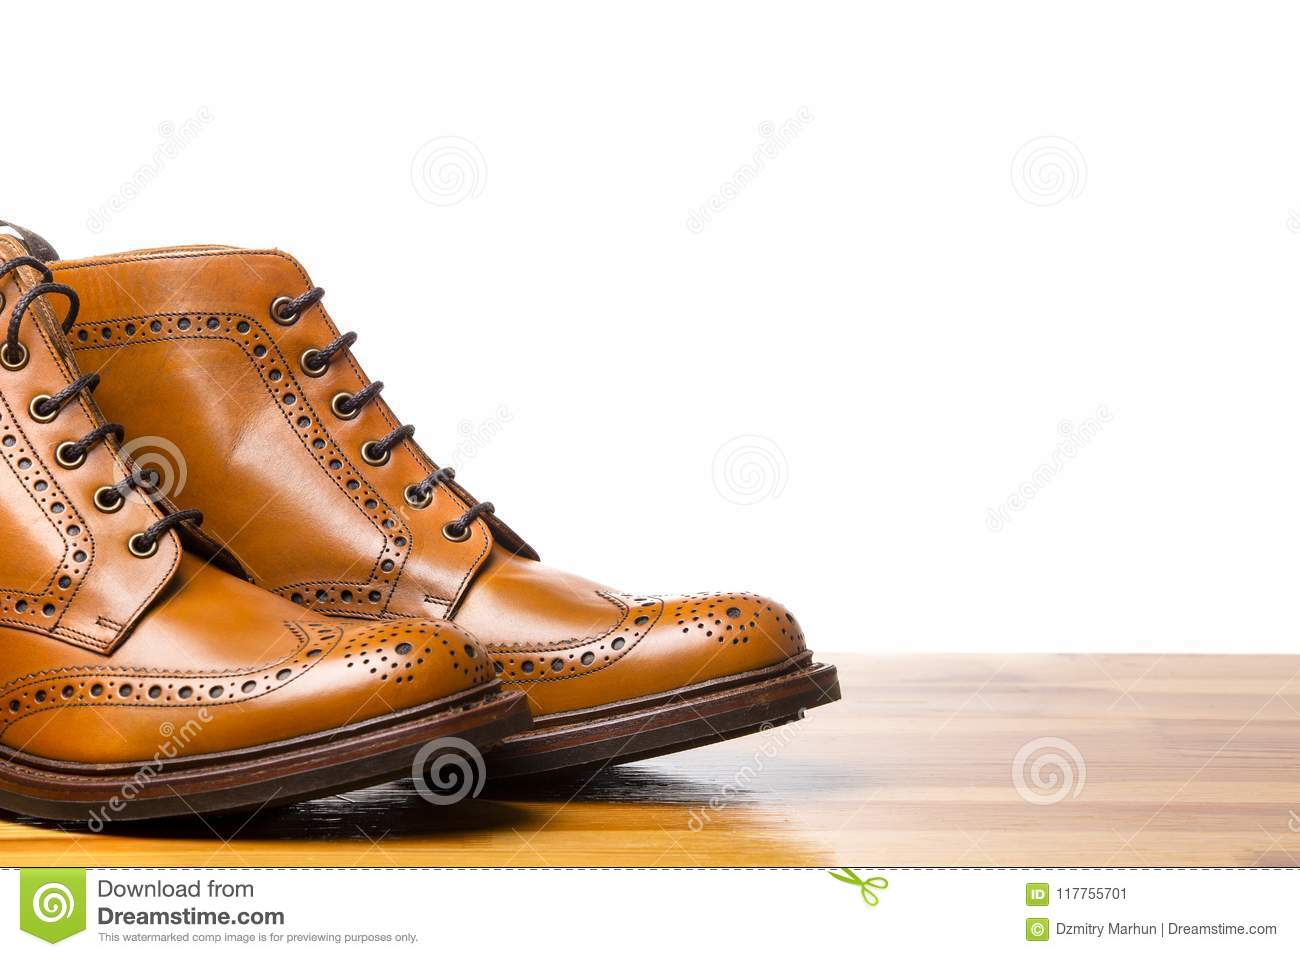 Footwear Concepts.Closeup of Tips of Pair of Tanned Brogues Boots